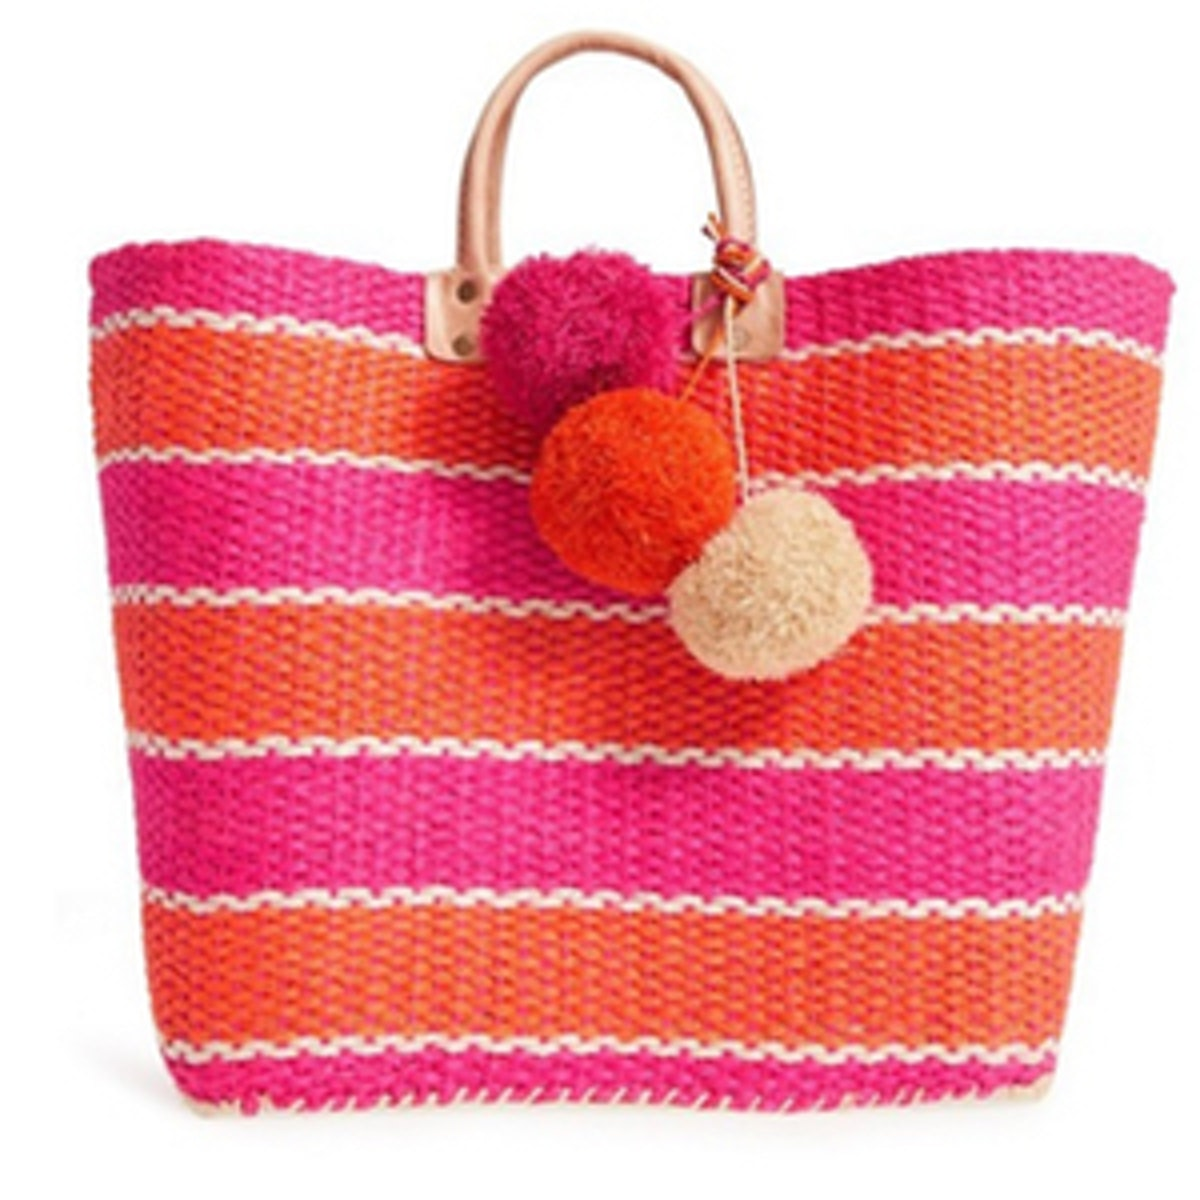 Capri' Woven Tote With Pom Charms